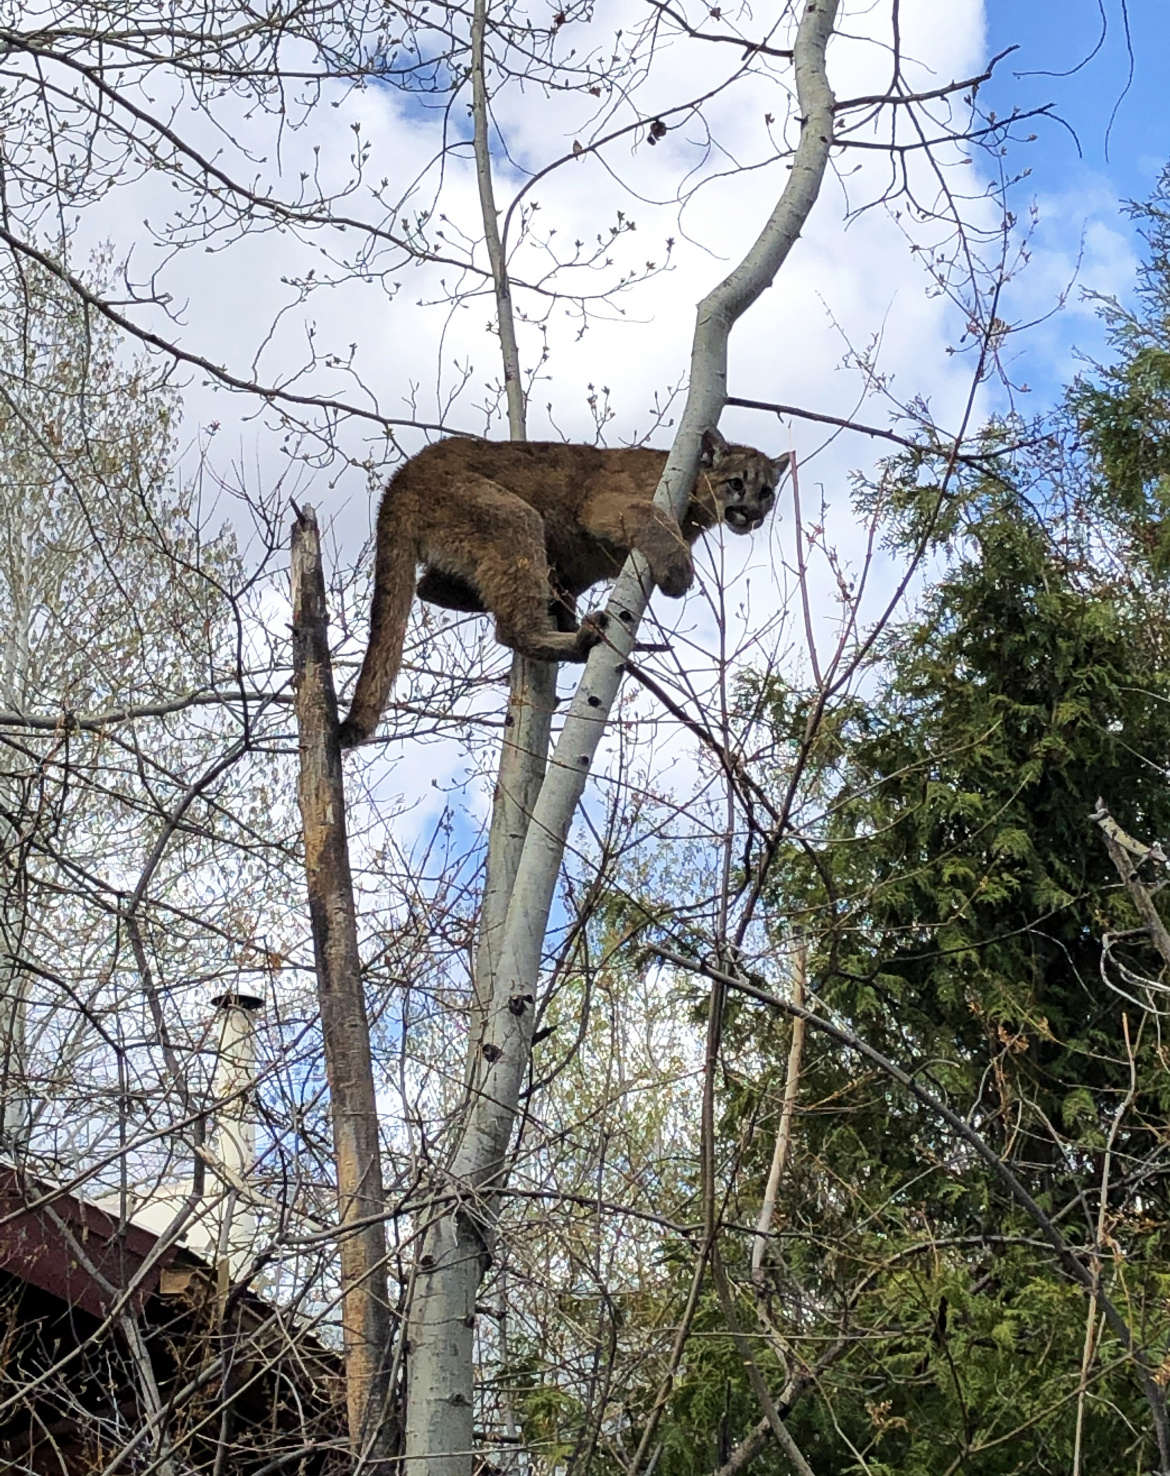 Mountain lions sightings continue throughout the Wood River Valley, caution advised